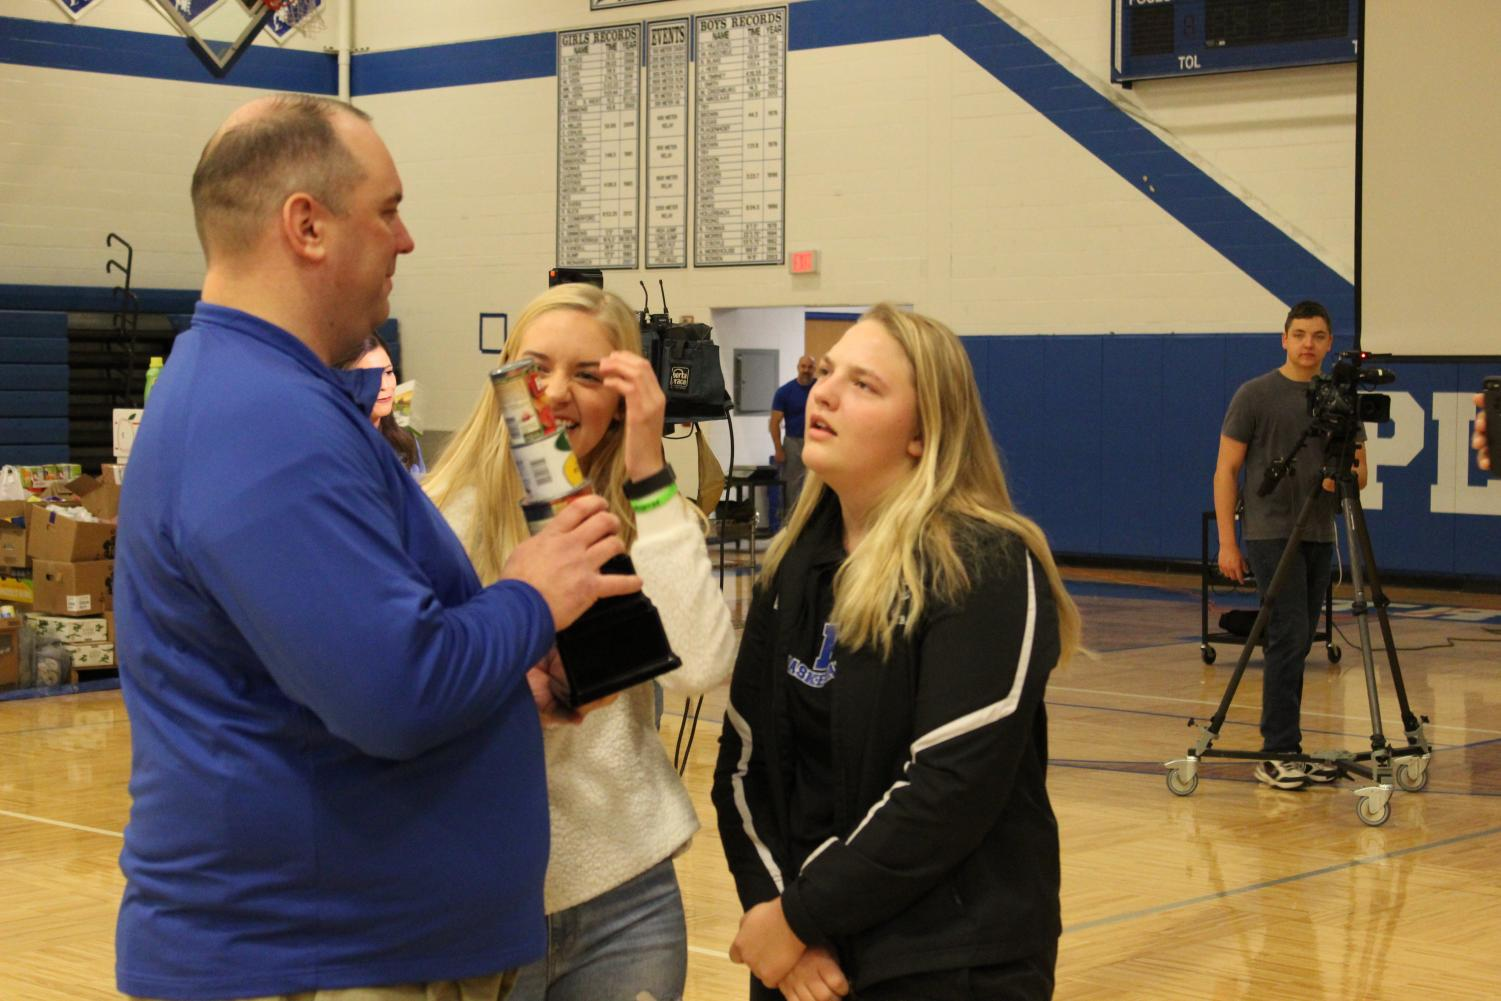 Dr.++Wright+receives+the+trophy+for+Plainwell+crushing+every+school+in+South+West+Michigan+for+food+donations.+